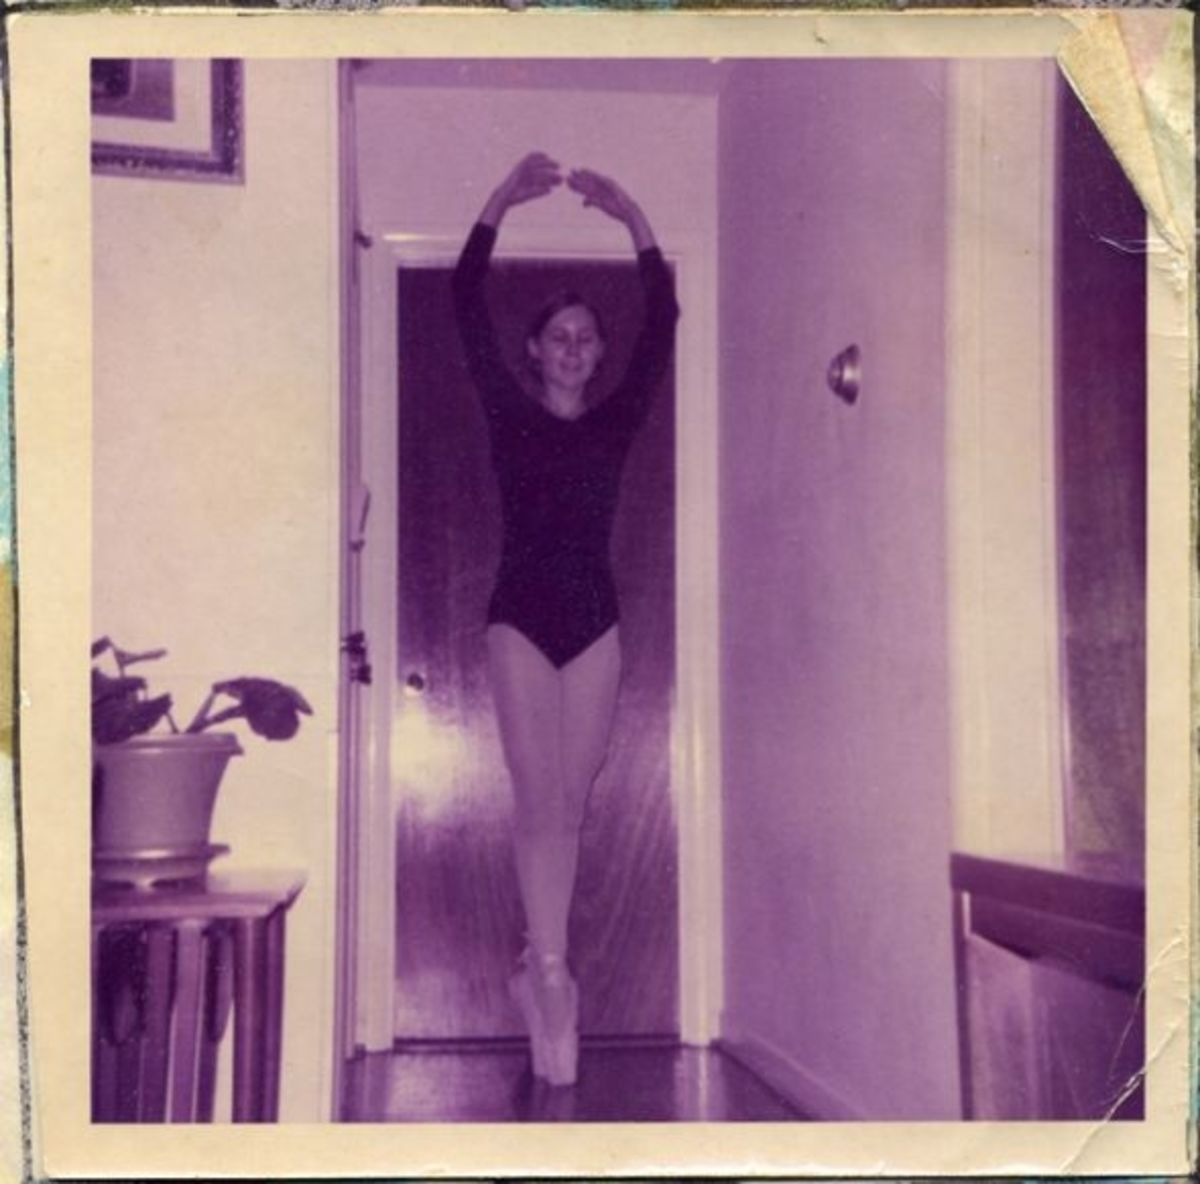 Here I am doing my thing on pointe in the hallway. I'm sure everyone in the family grew weary of my perpetual dancing.